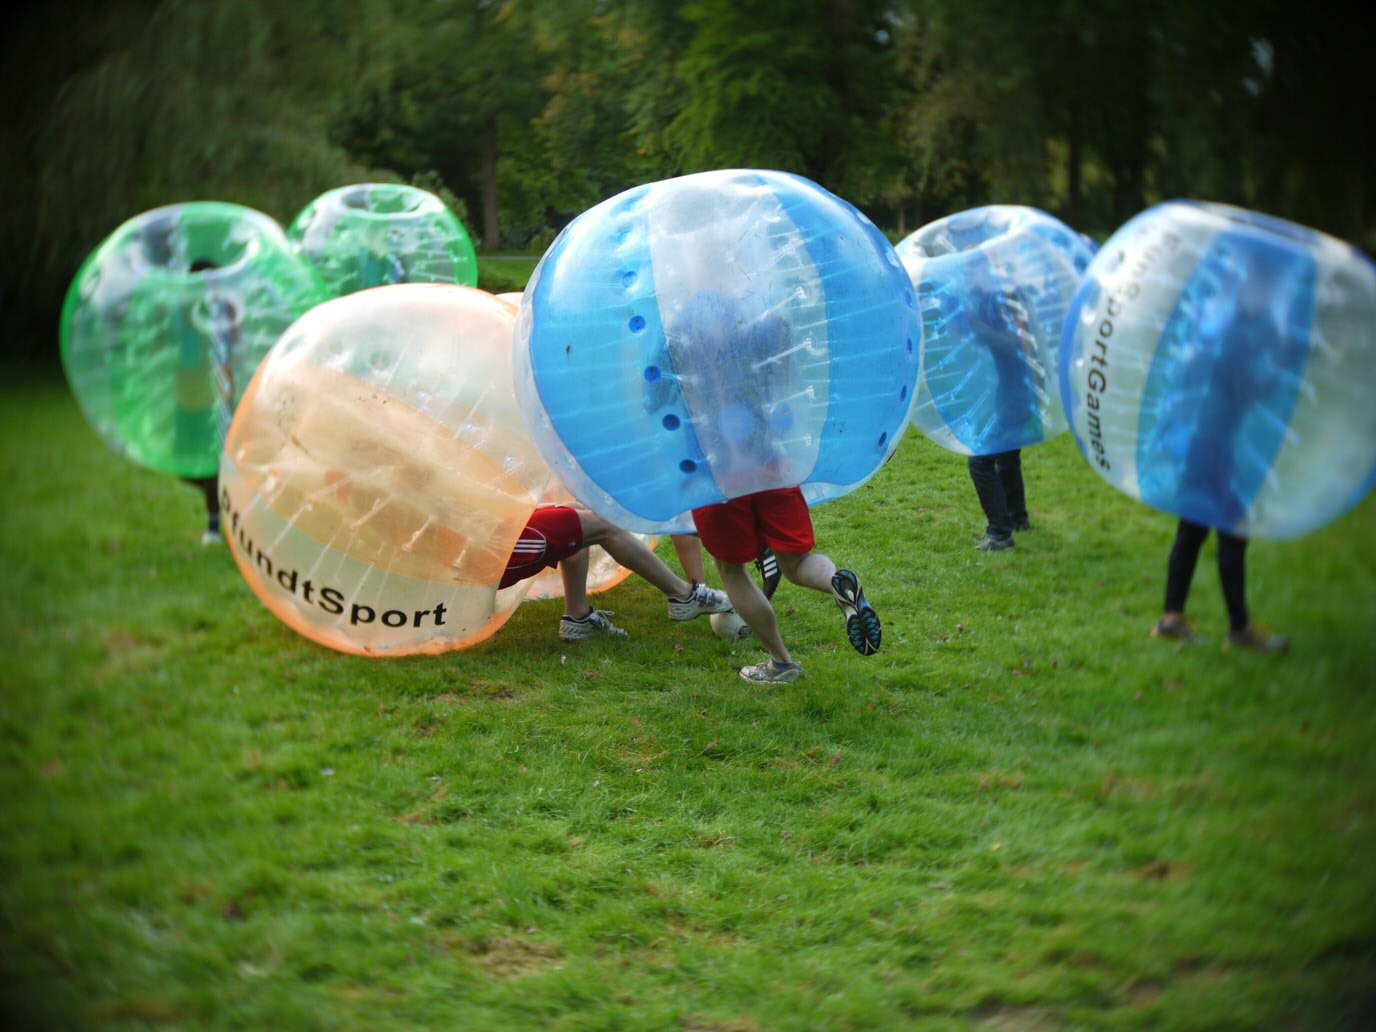 Our team in action during the bubble-soccer deathmatch action